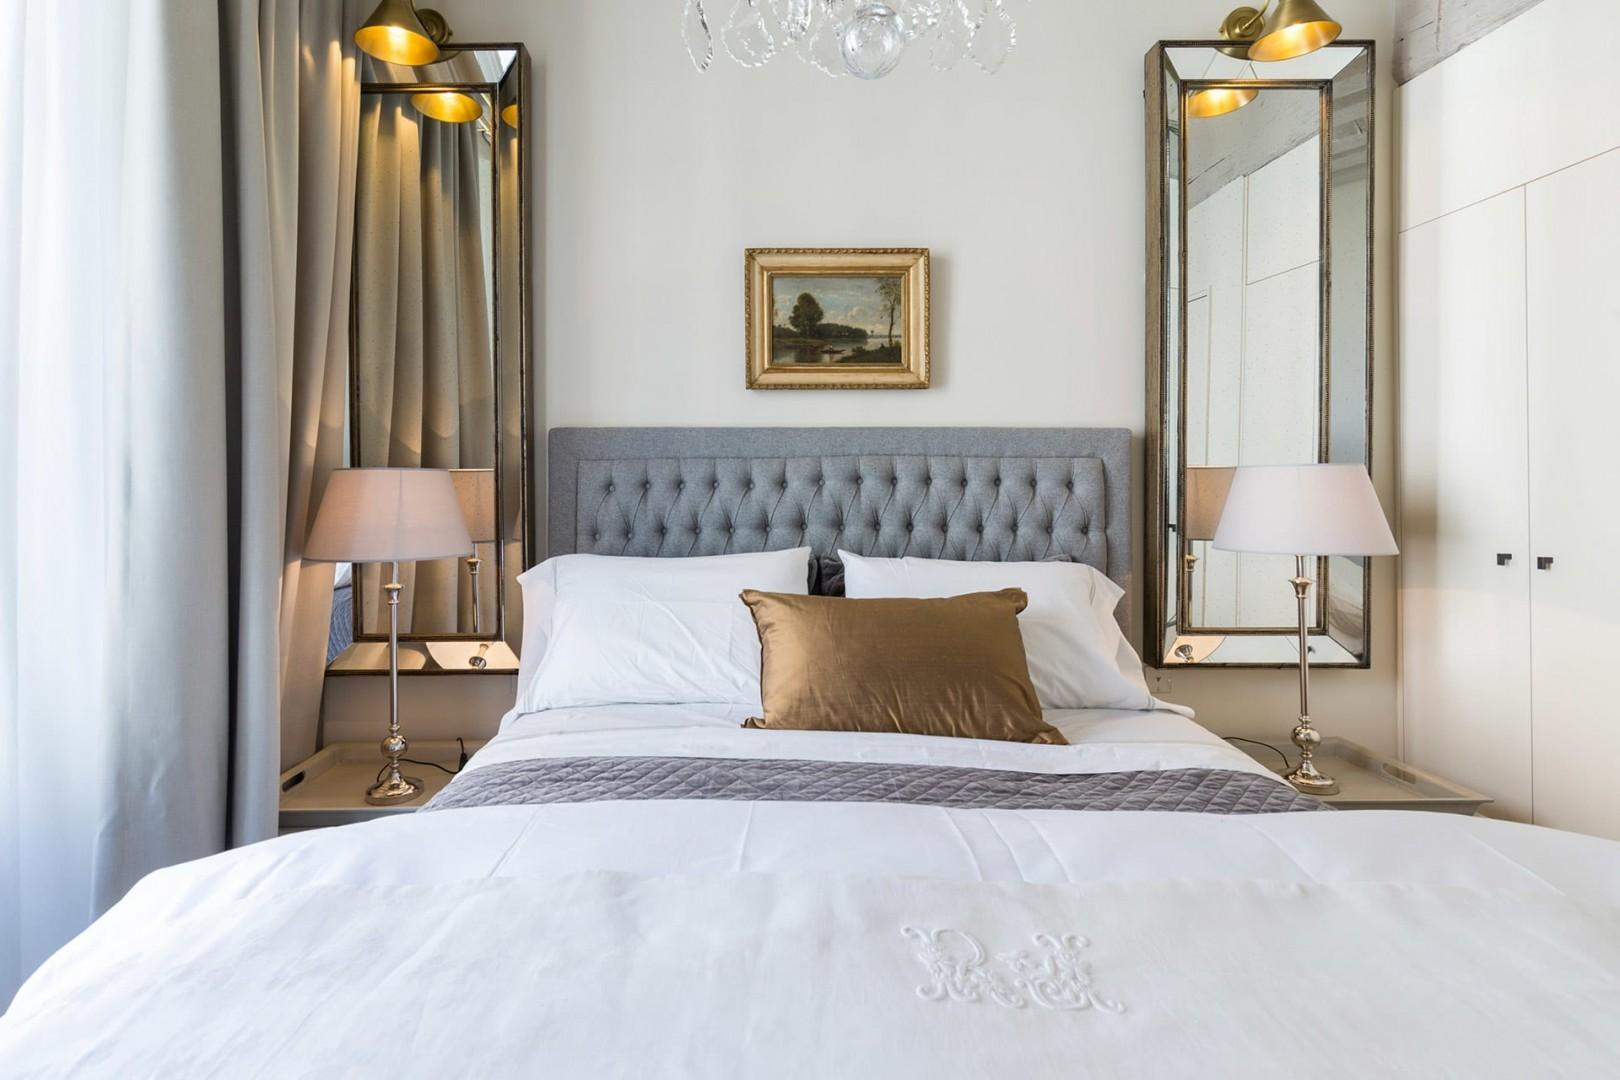 Get a good night's sleep in the large, sumptuous bed.